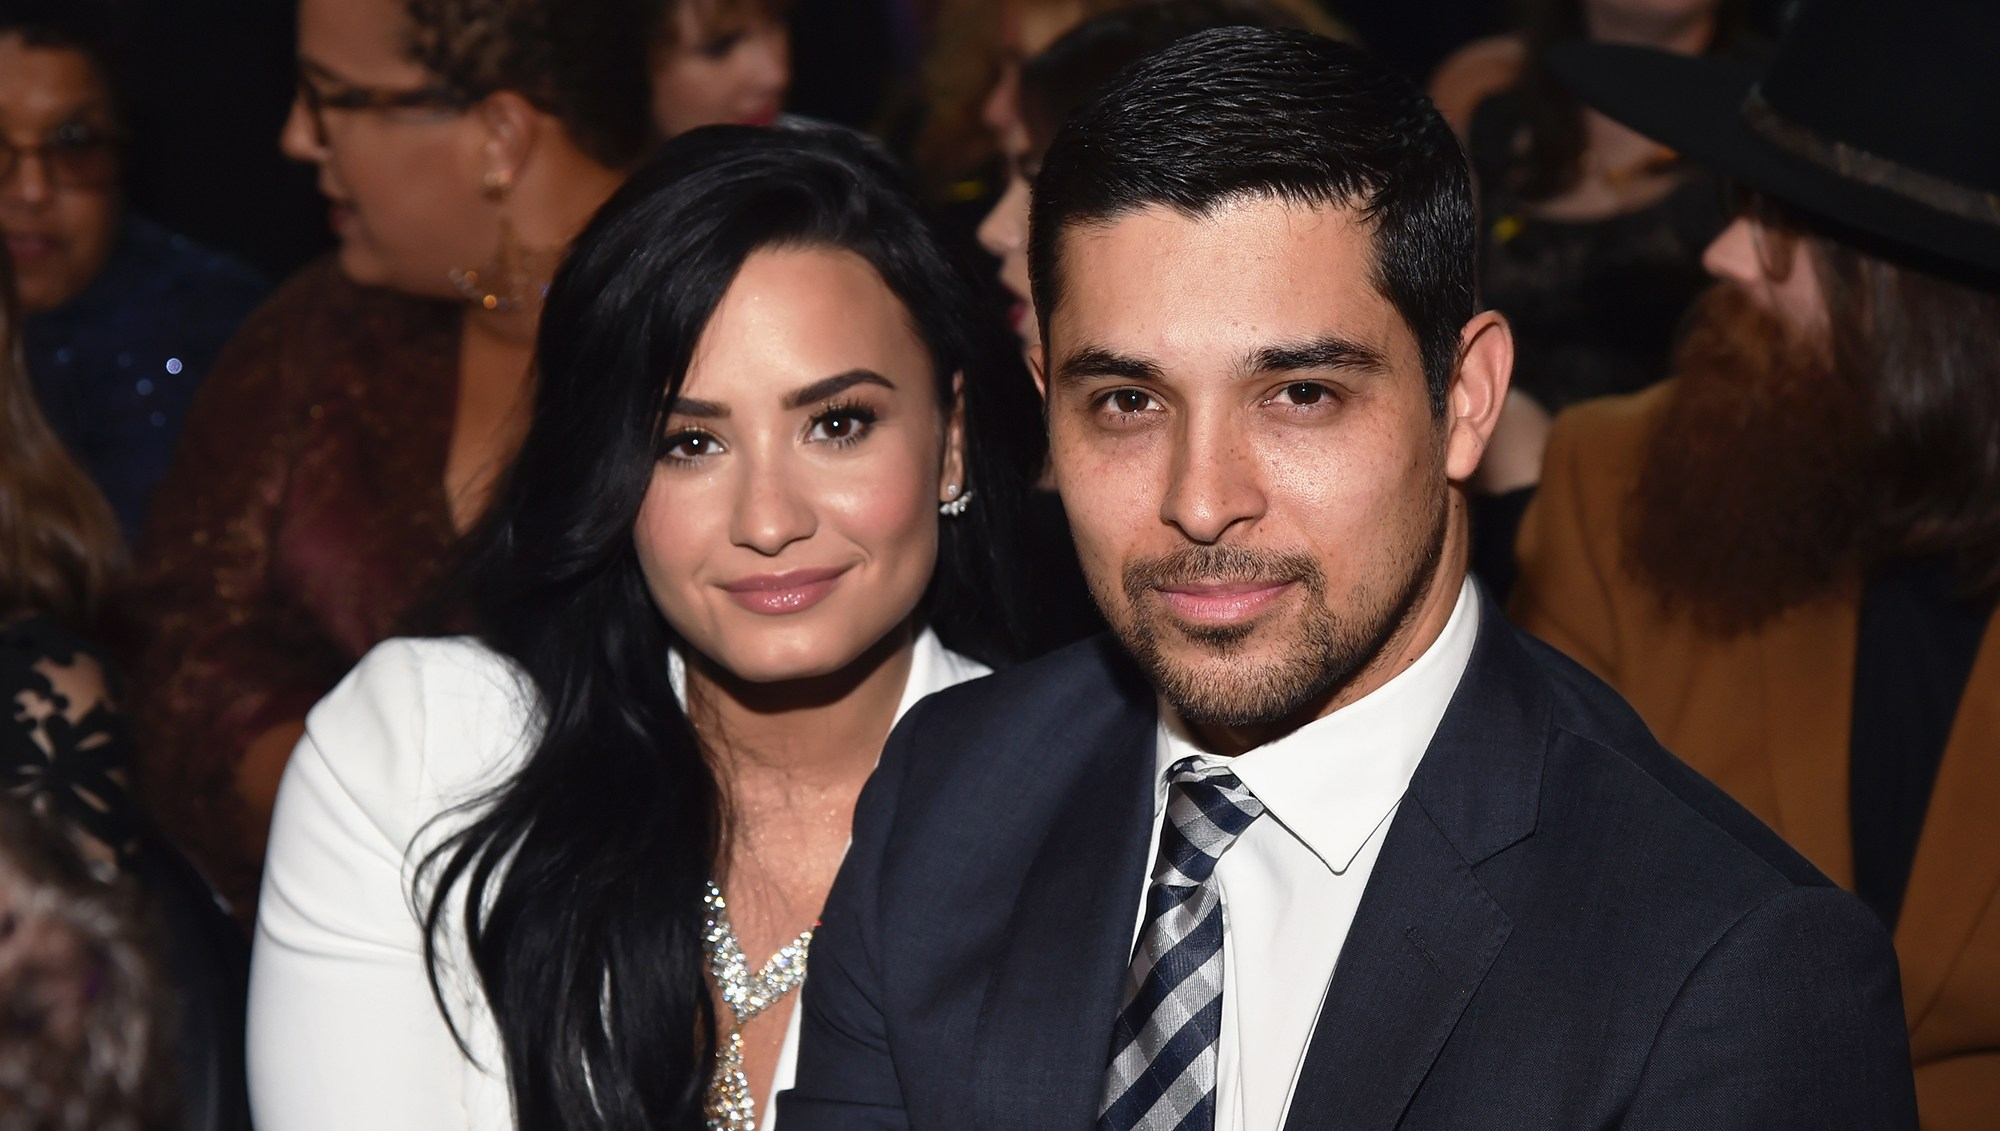 Demi Lovato and Wilmer Valderrama Are in 'Constant Communication' After Her Rehab Stint